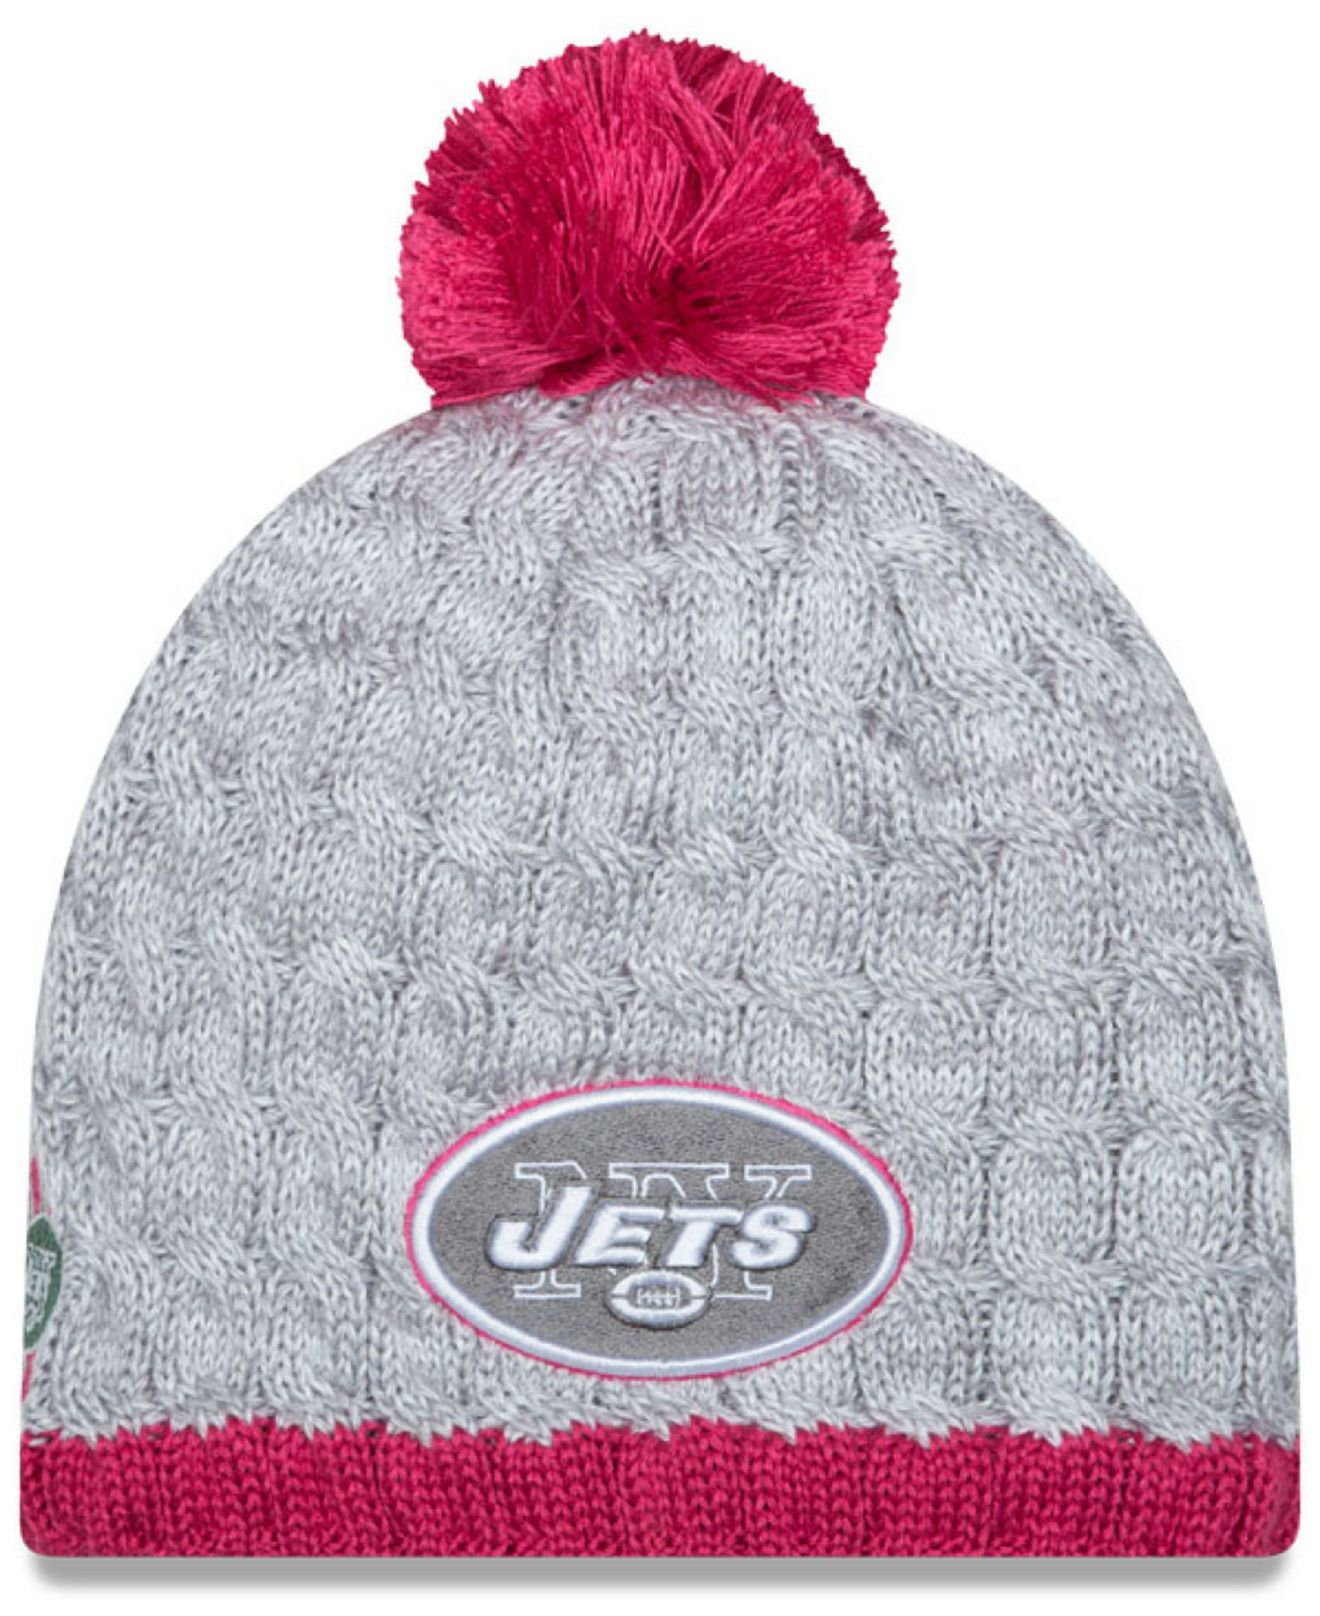 8ceb5a3191438 Lyst - KTZ Women s New York Jets Breast Cancer Awareness Knit Hat in ...